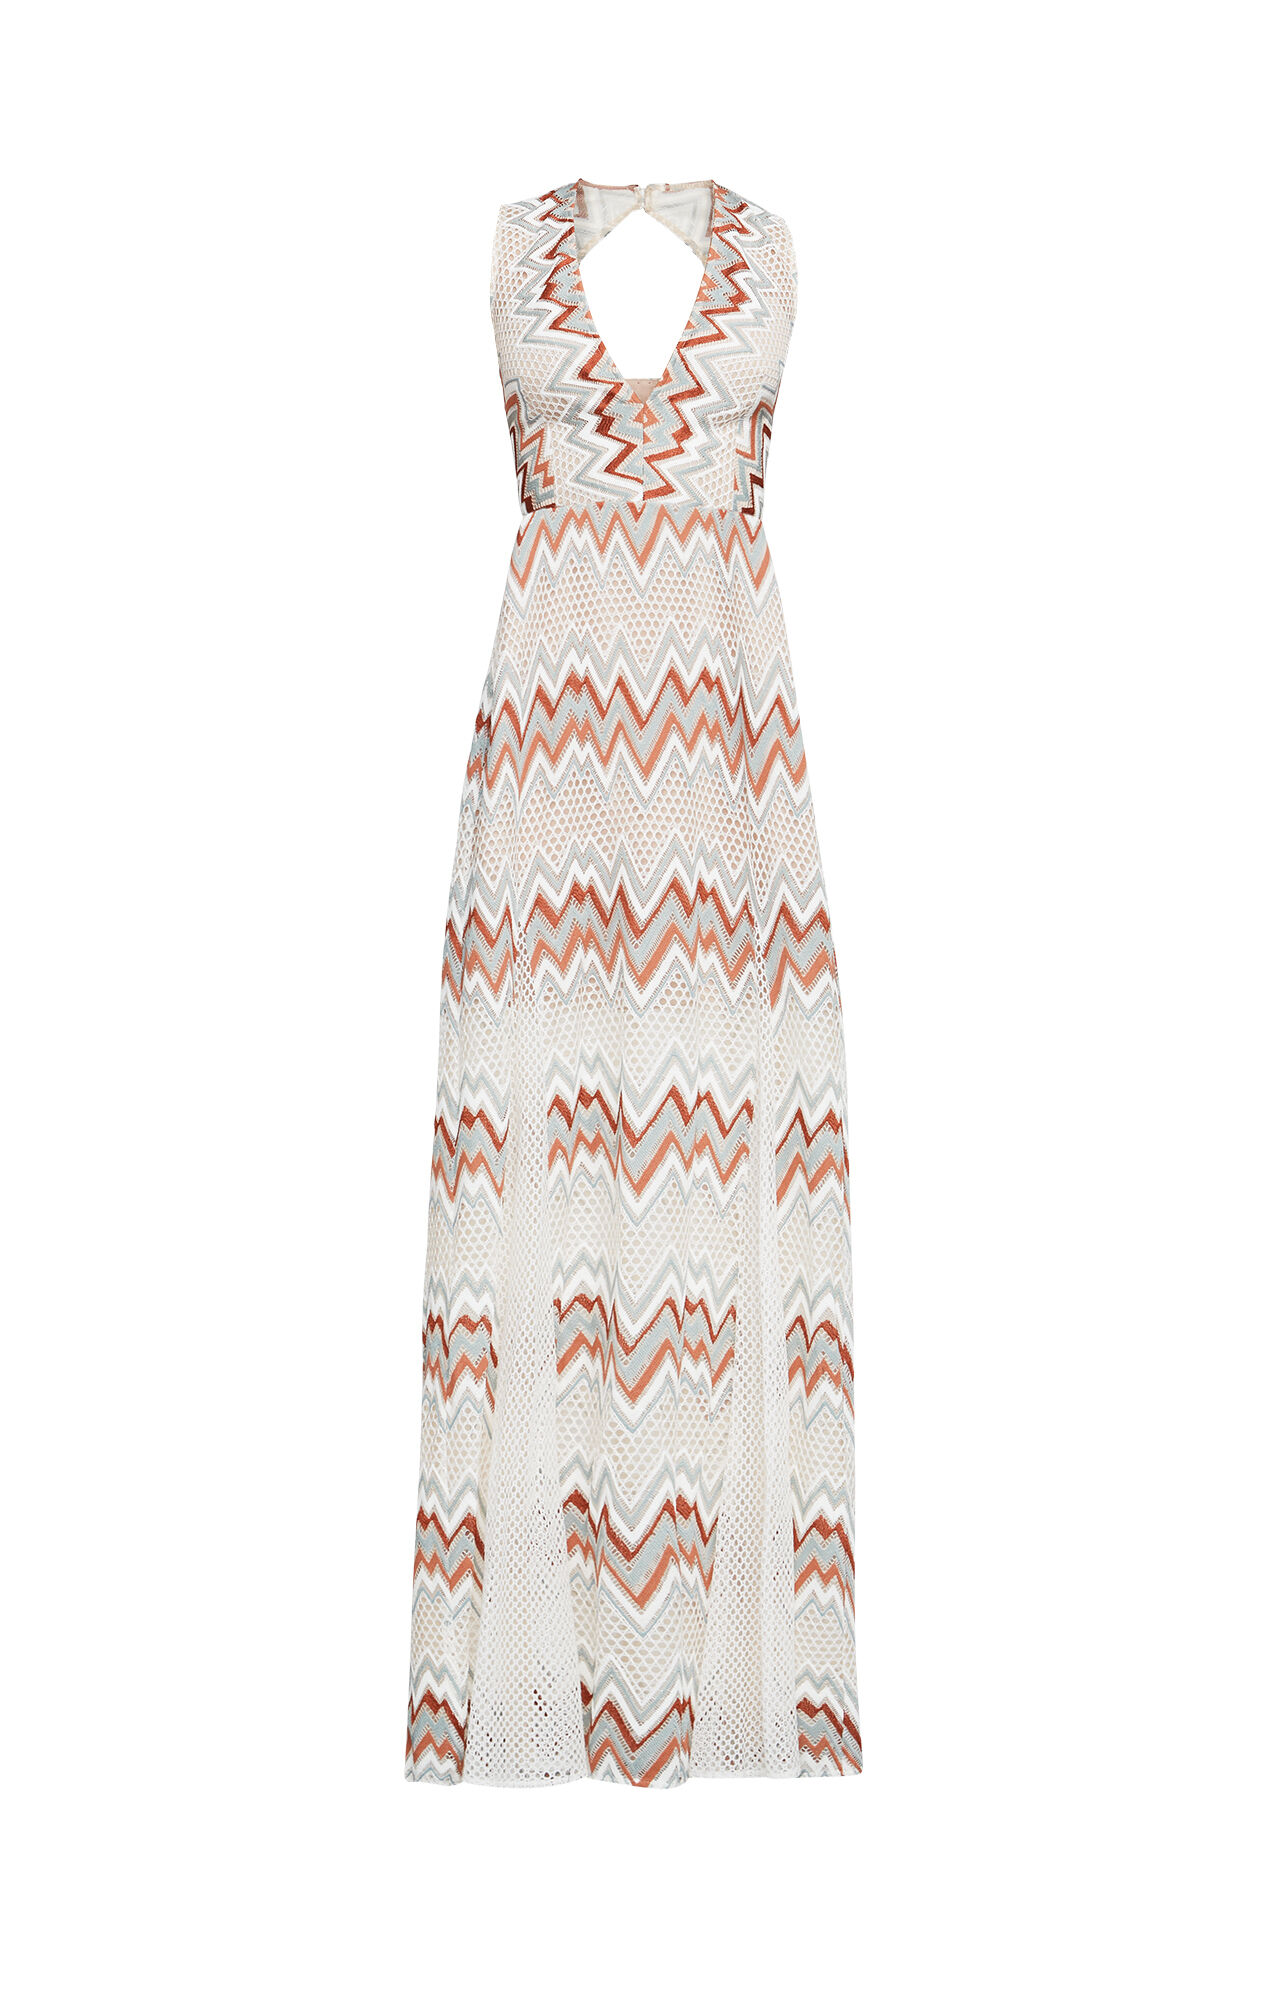 Gia Chevron Stripe Lace Dress